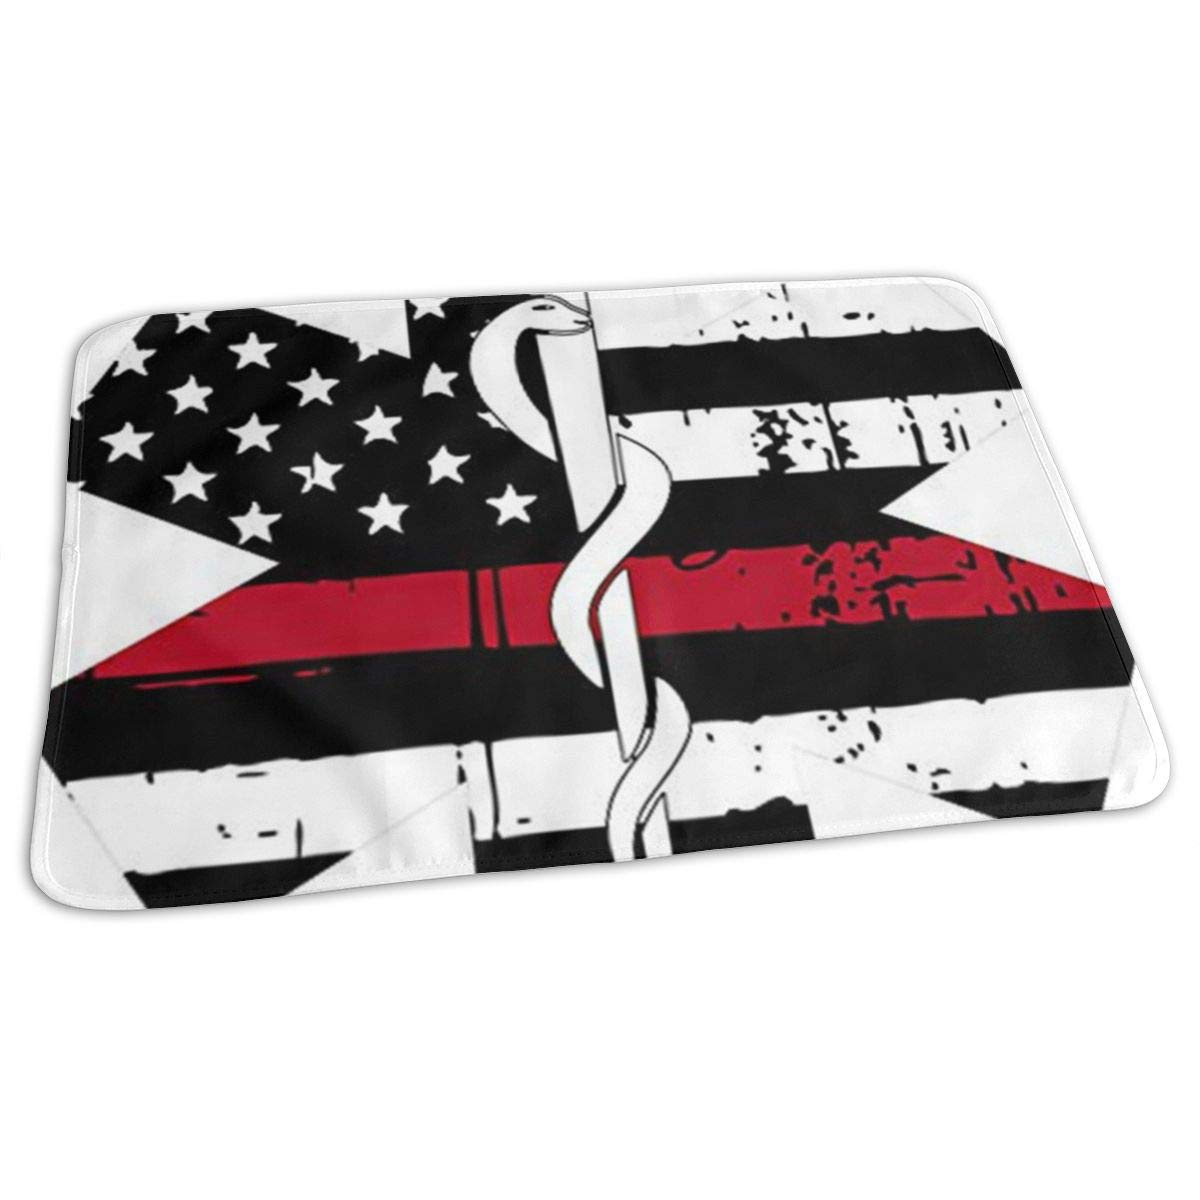 Star of Life Red Tattered Flag Baby Changing Pad Waterproof Portable Changing Pad Home Travel 27.5¡±x19.7¡±